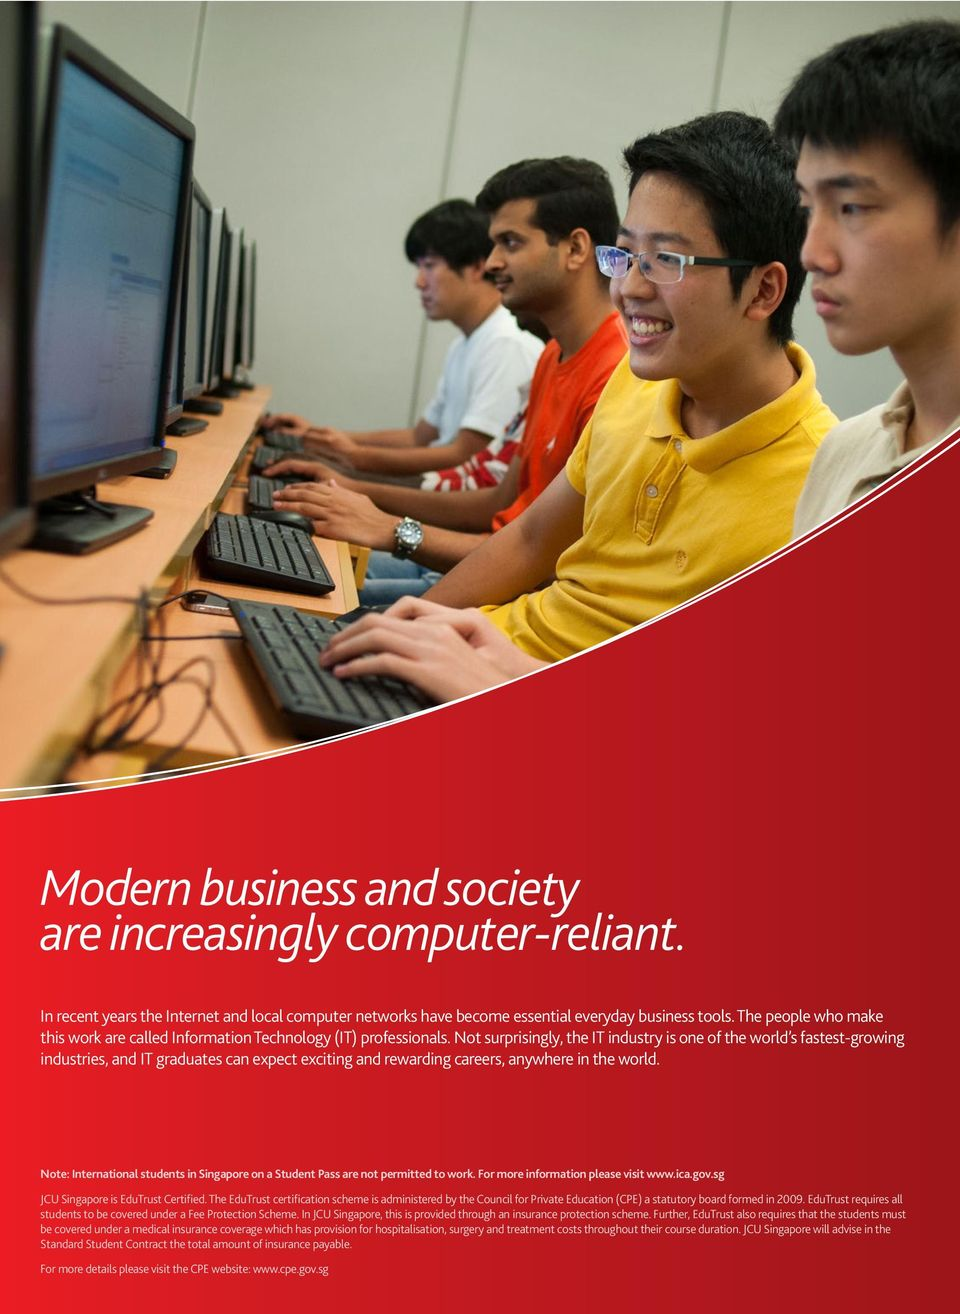 Not surprisingly, the IT industry is one of the world s fastest-growing industries, and IT graduates can expect exciting and rewarding careers, anywhere in the world.